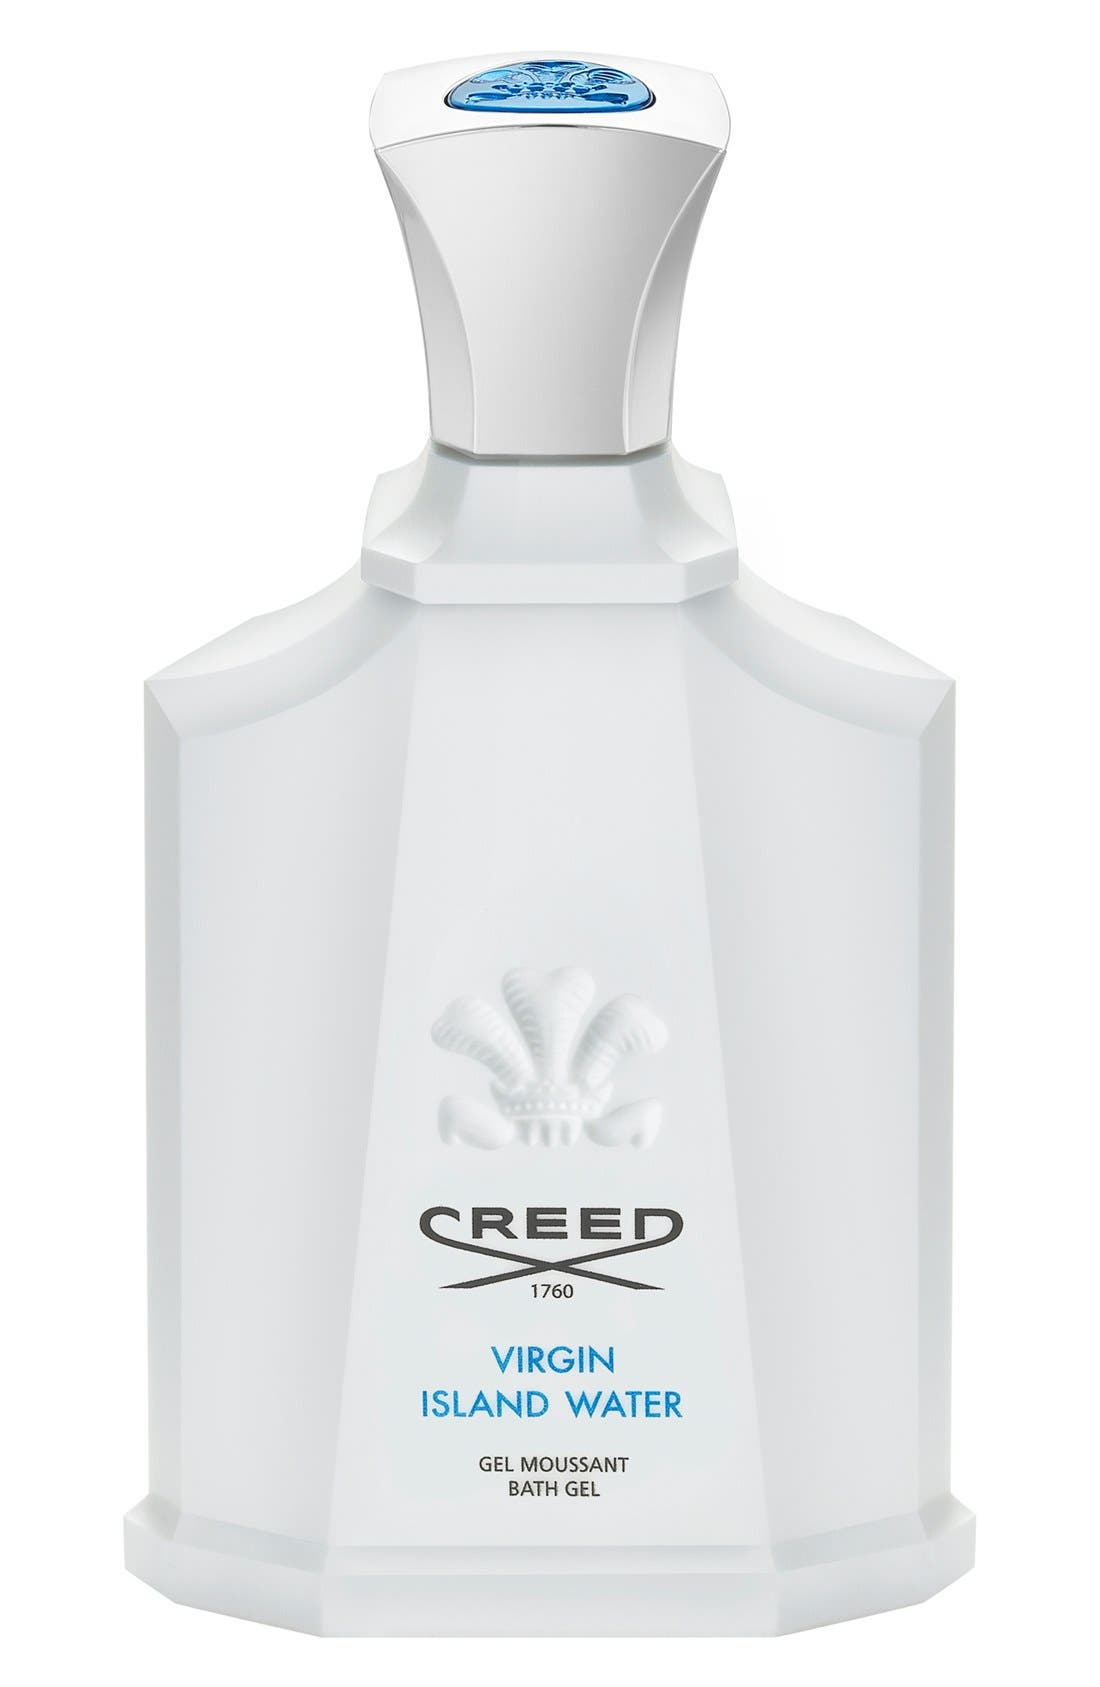 'Virgin Island Water' Shower Gel,                             Main thumbnail 1, color,                             NO COLOR